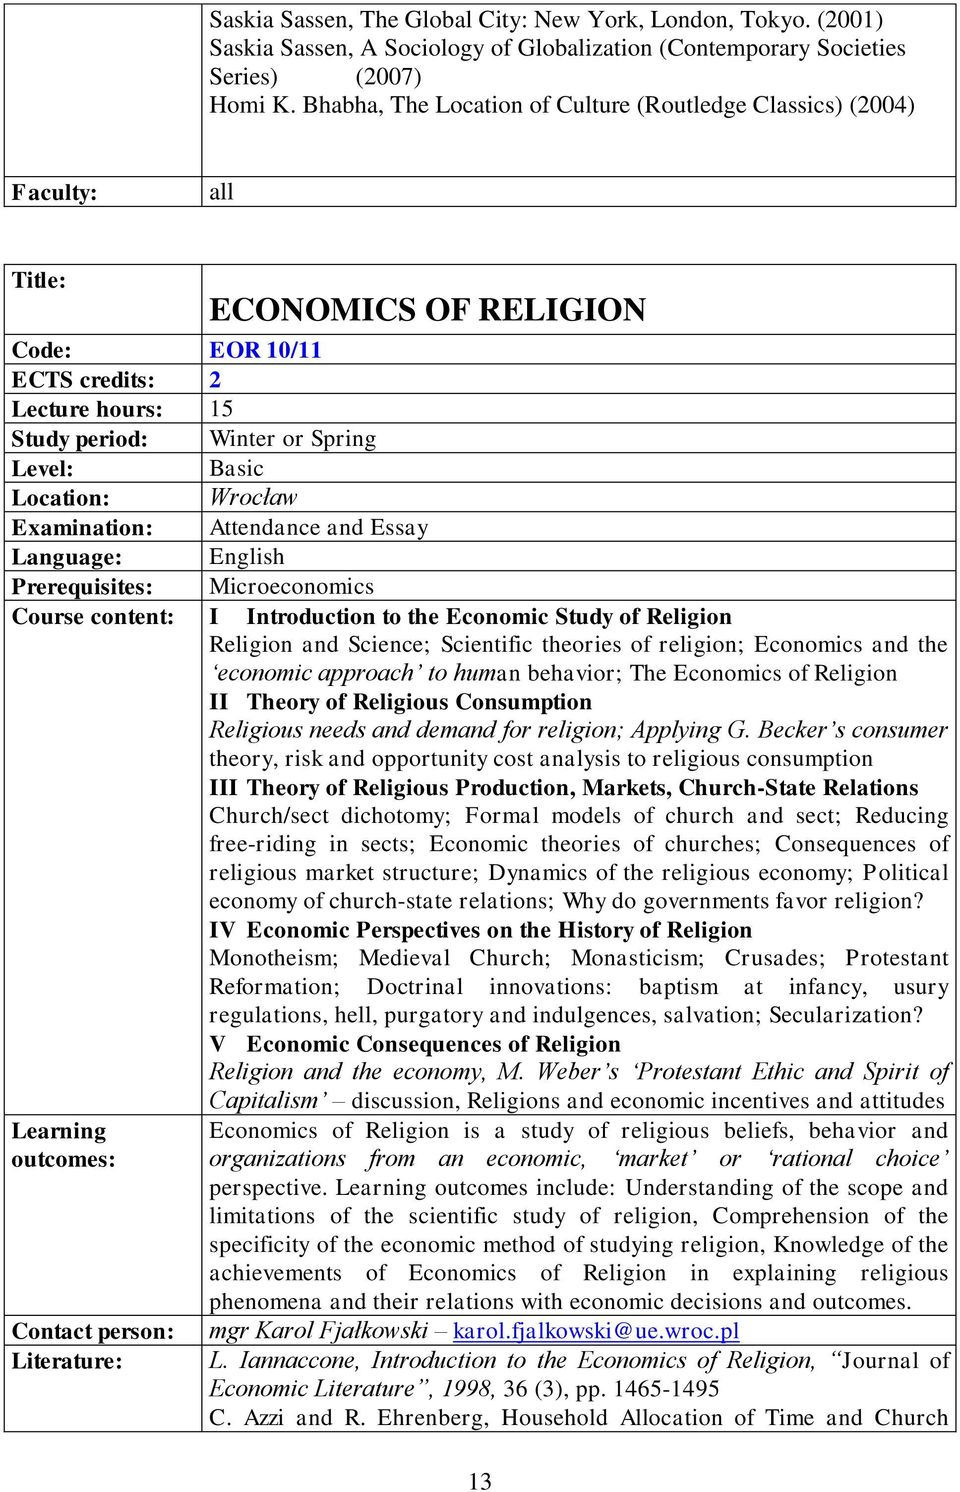 Essay Prerequisites: Microeconomics I Introduction to the Economic Study of Religion Religion and Science; Scientific theories of religion; Economics and the economic approach to human behavior; The